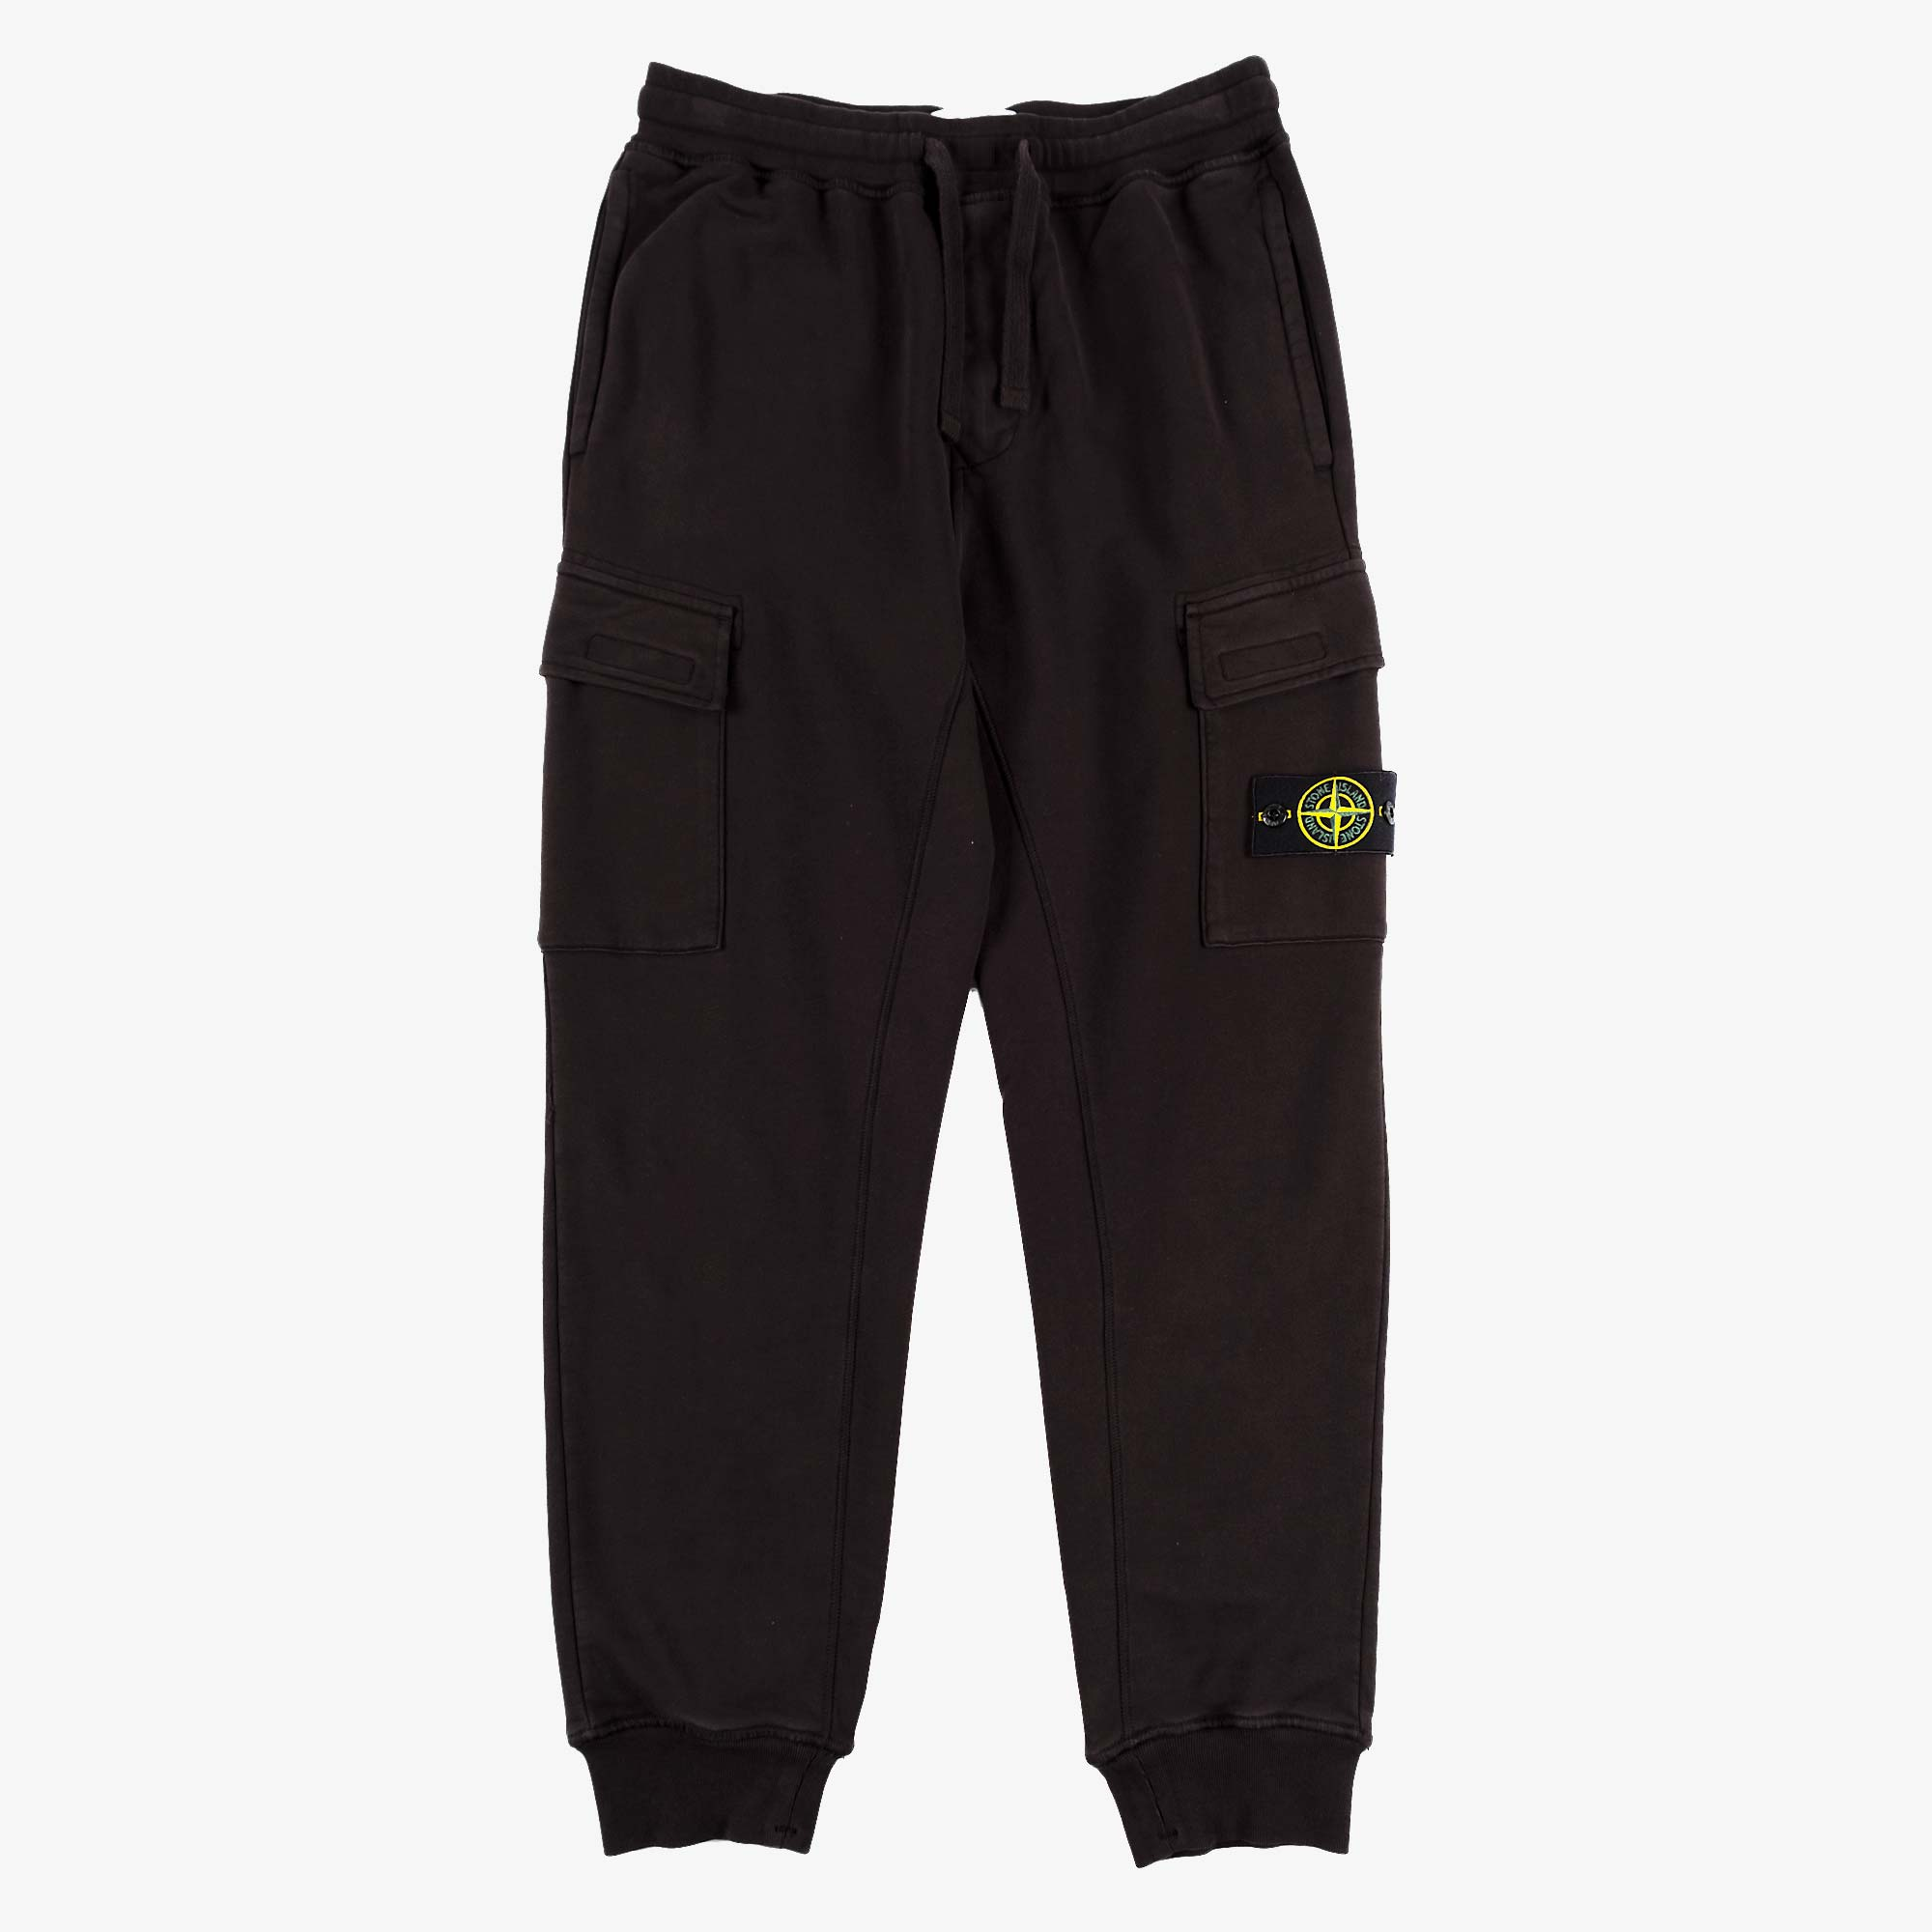 Stone Island Fleece Pants 741565251 - Black 1